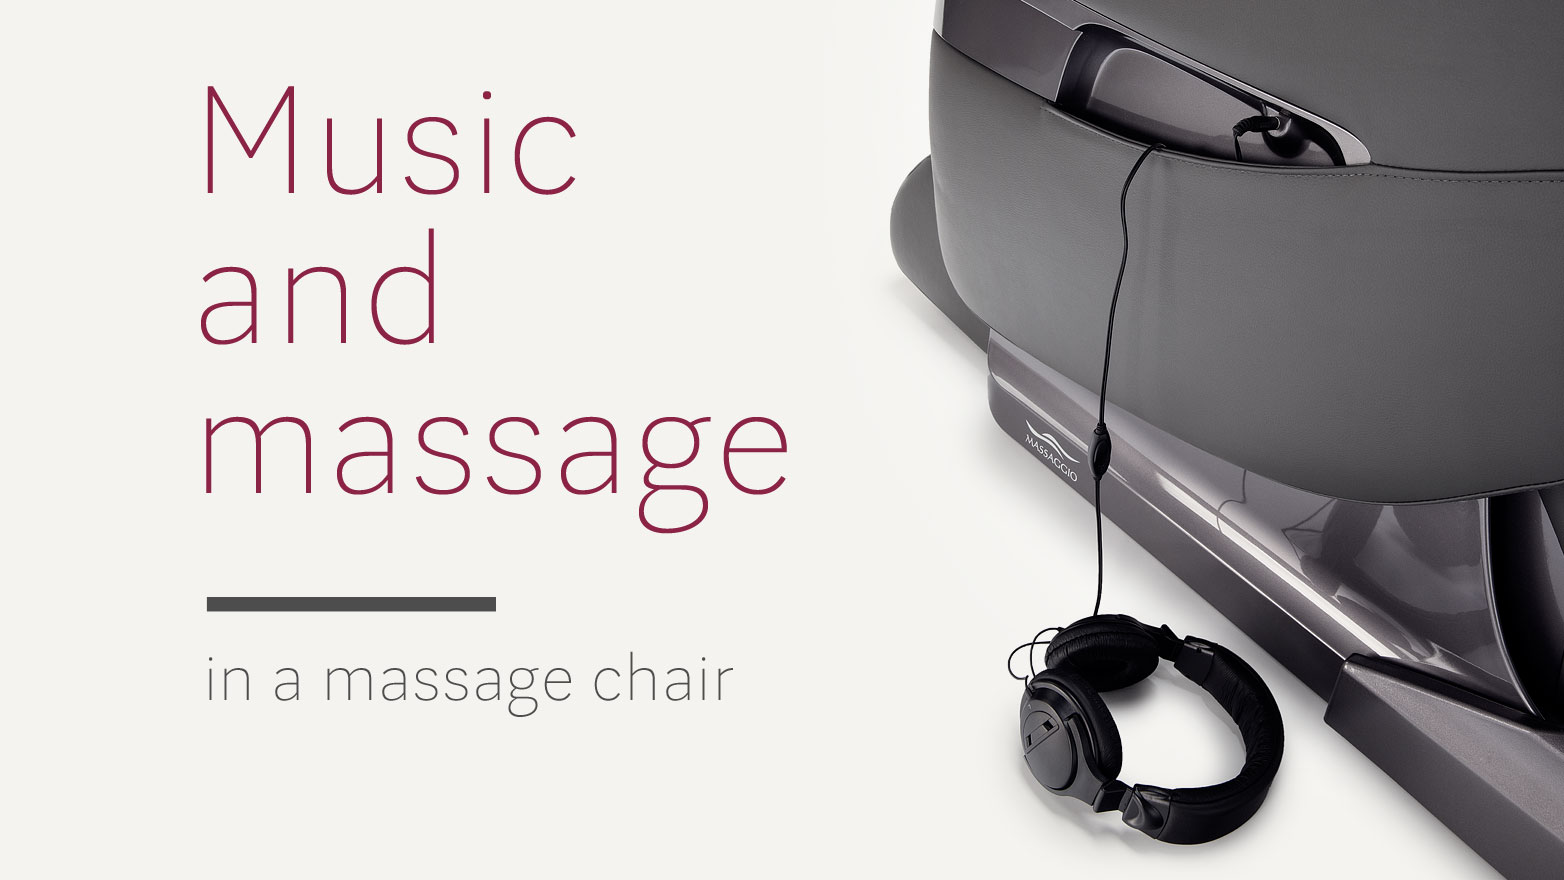 Music in massage chair